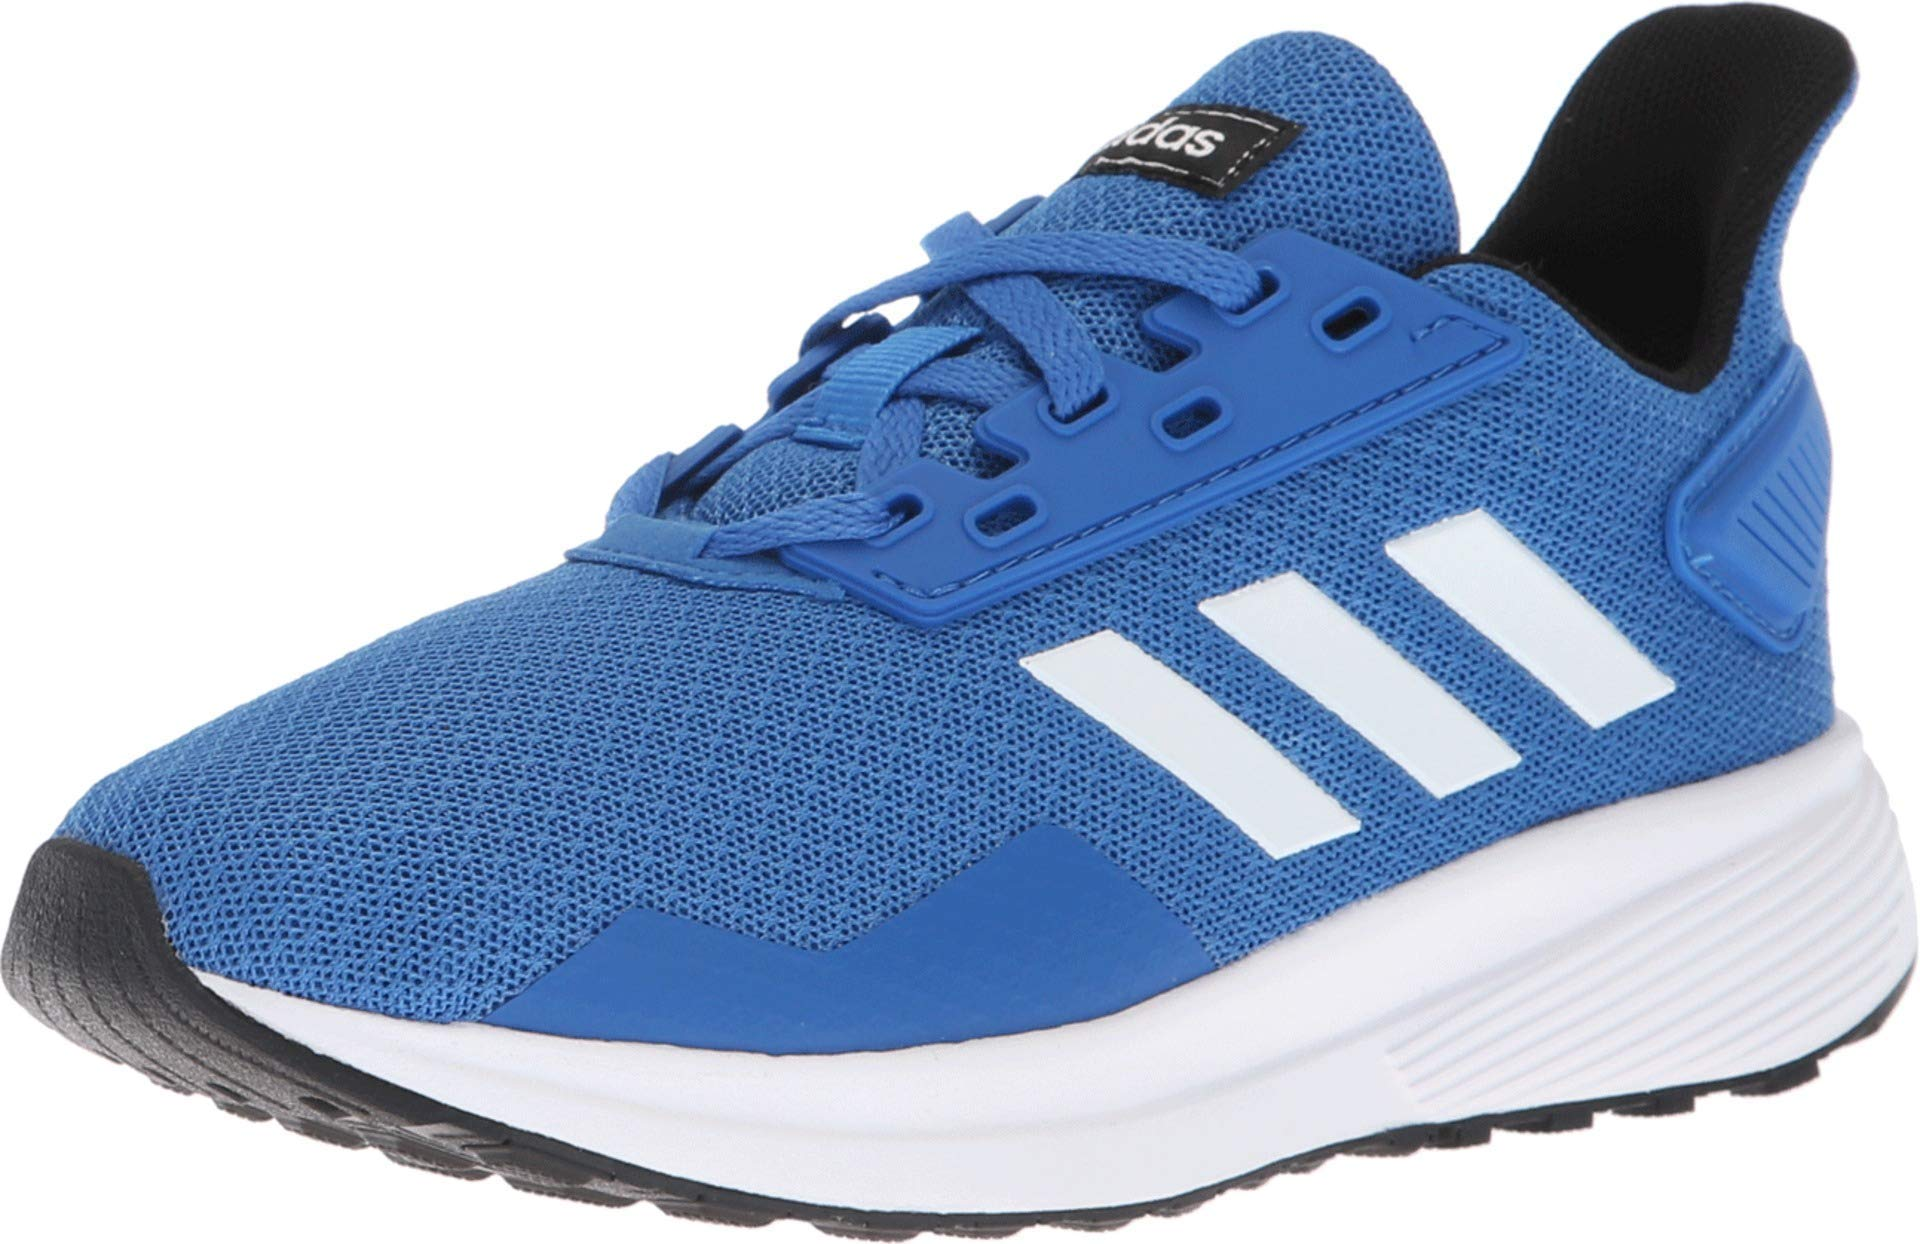 adidas Unisex-Kid's Duramo 9 Running Shoe, Blue/White/Black, 12.5 M US by adidas